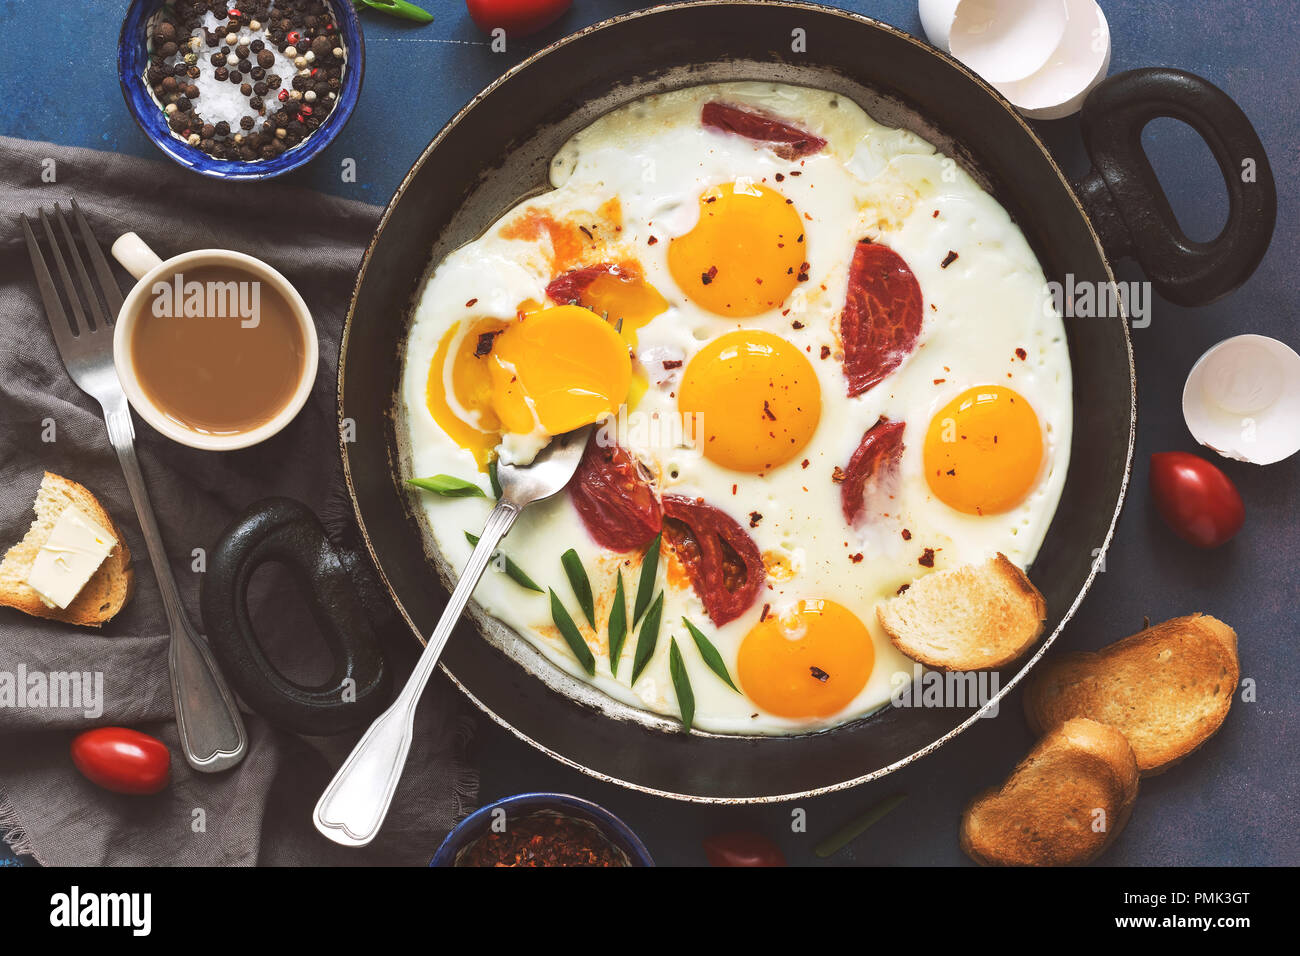 Flat lay fried eggs with tomatoes in a pan, toast with butter, coffee. A hearty Breakfast on a blue background - Stock Image